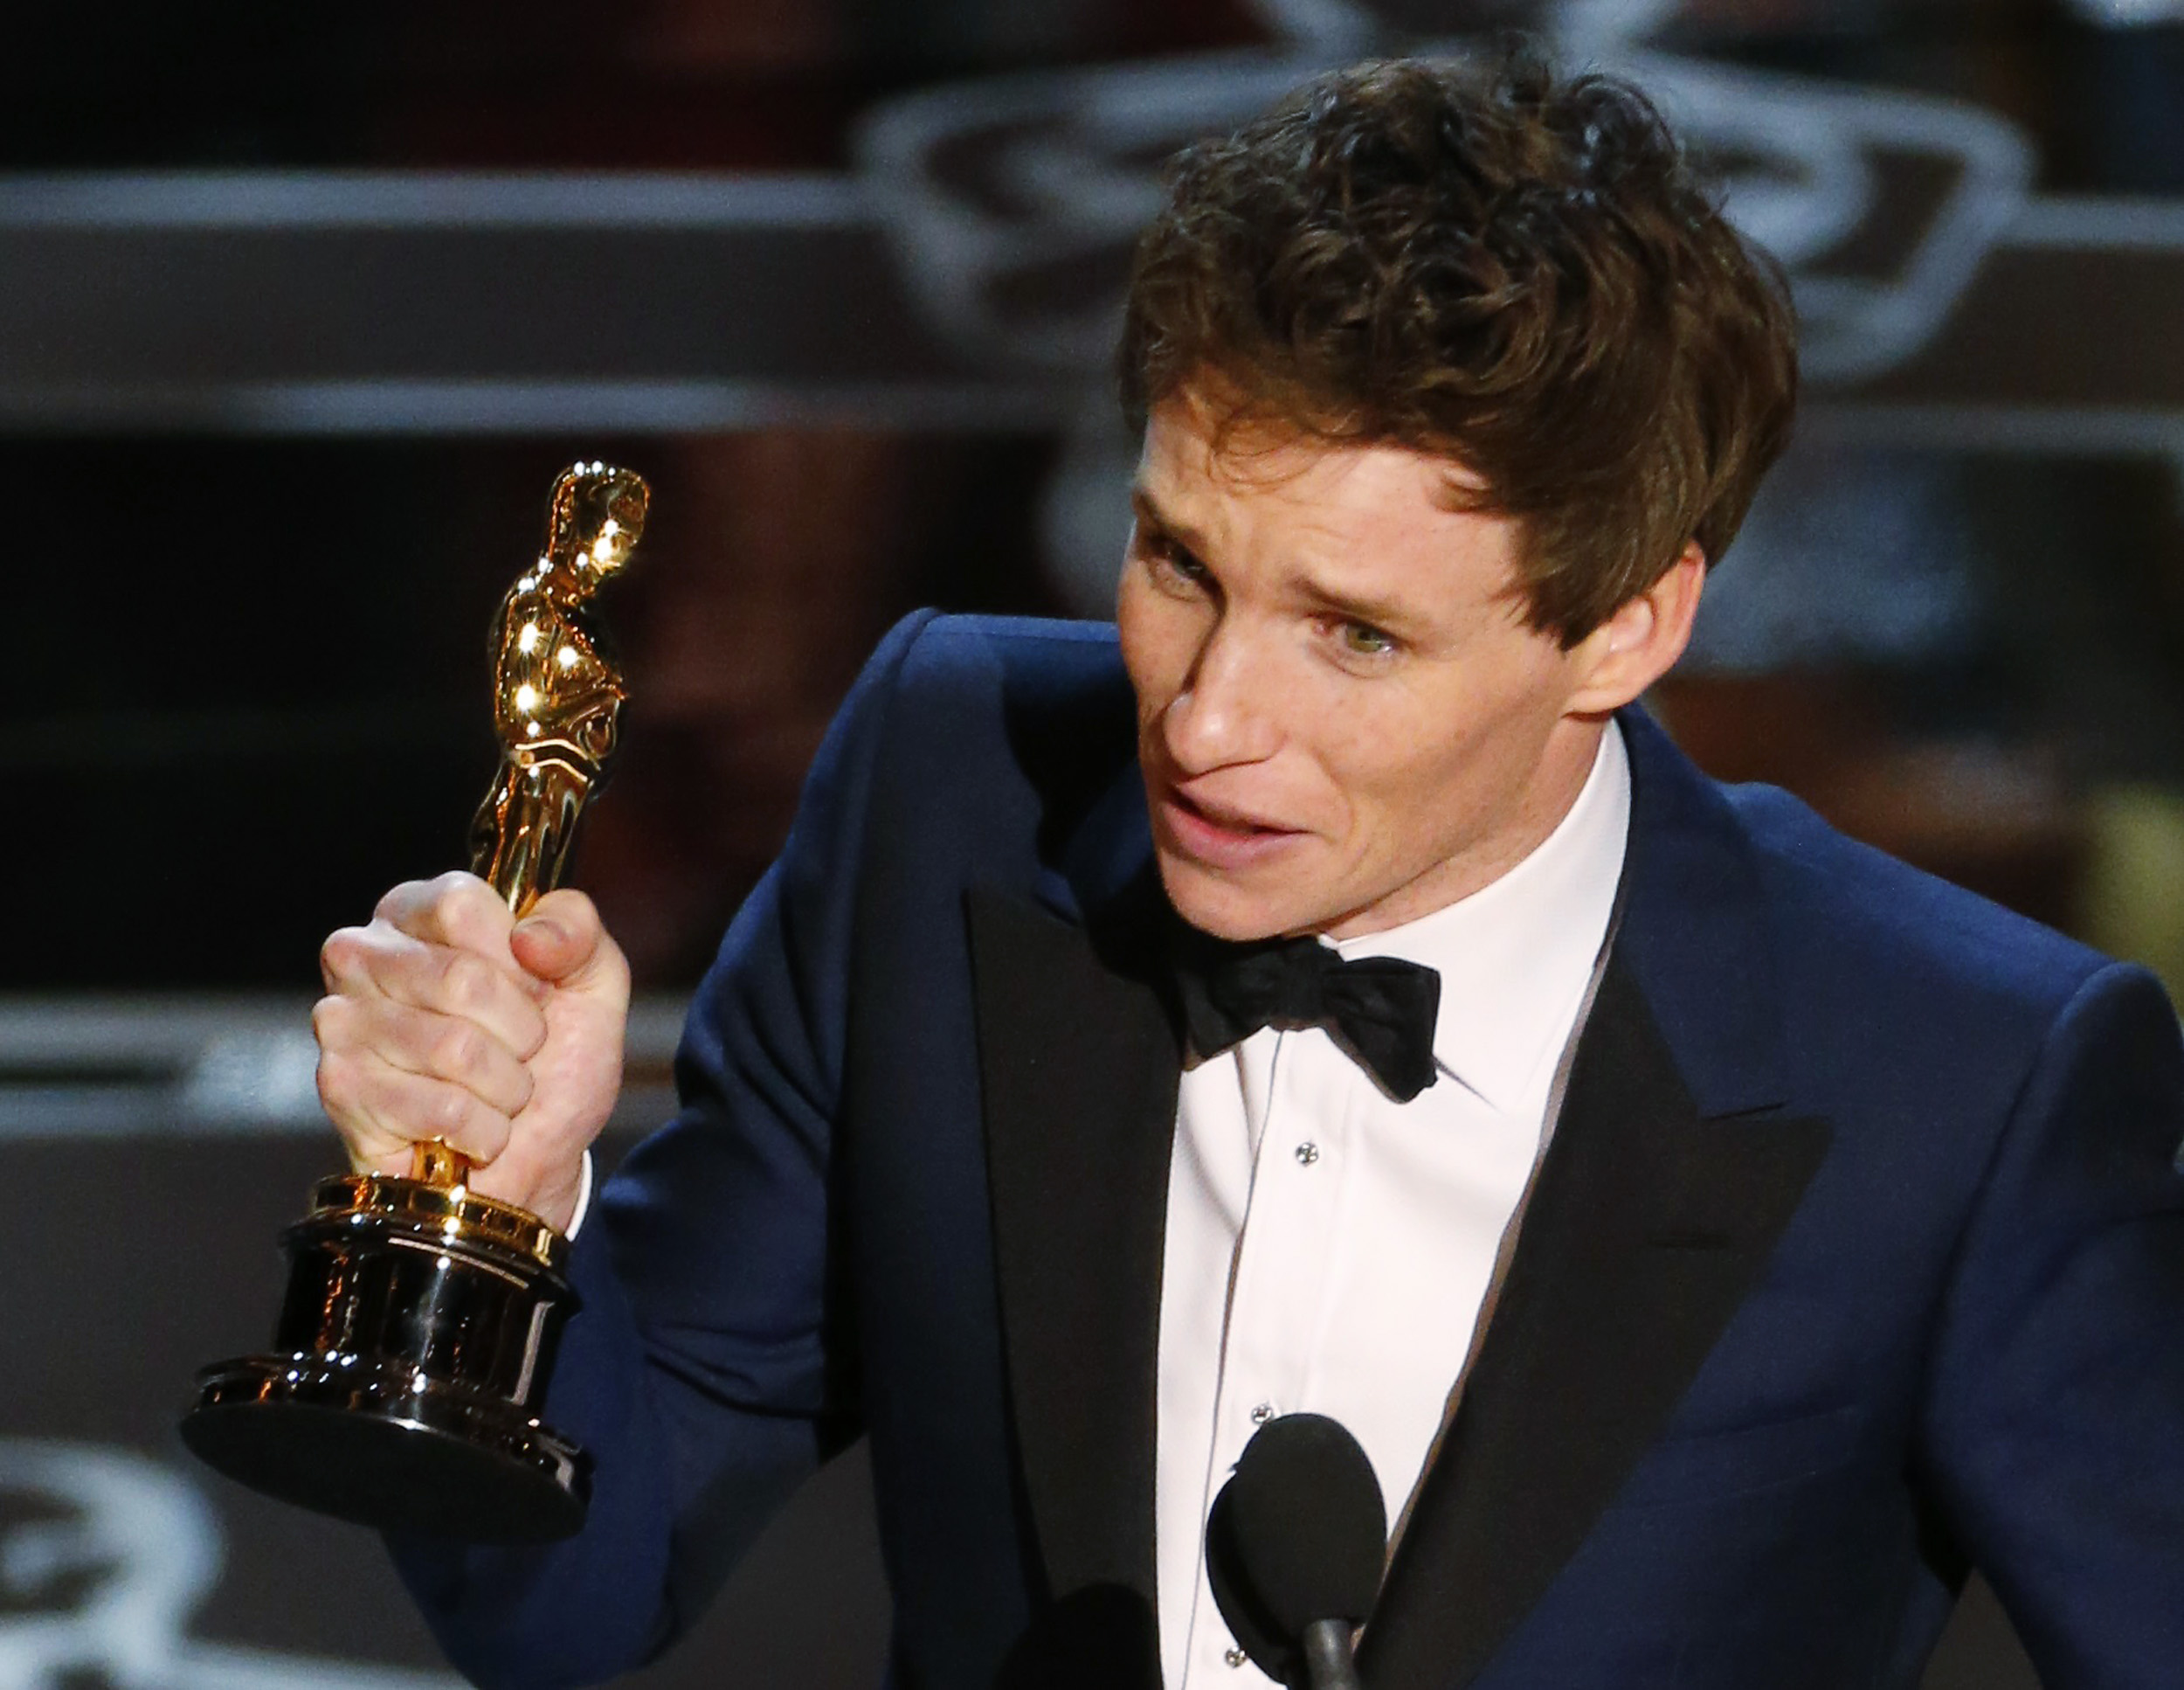 """Actor Eddie Redmayne accepts the Oscar for best actor for his role in """"The Theory of Everything"""" during the 87th Academy Awards in Hollywood, California, Feb. 22, 2015."""